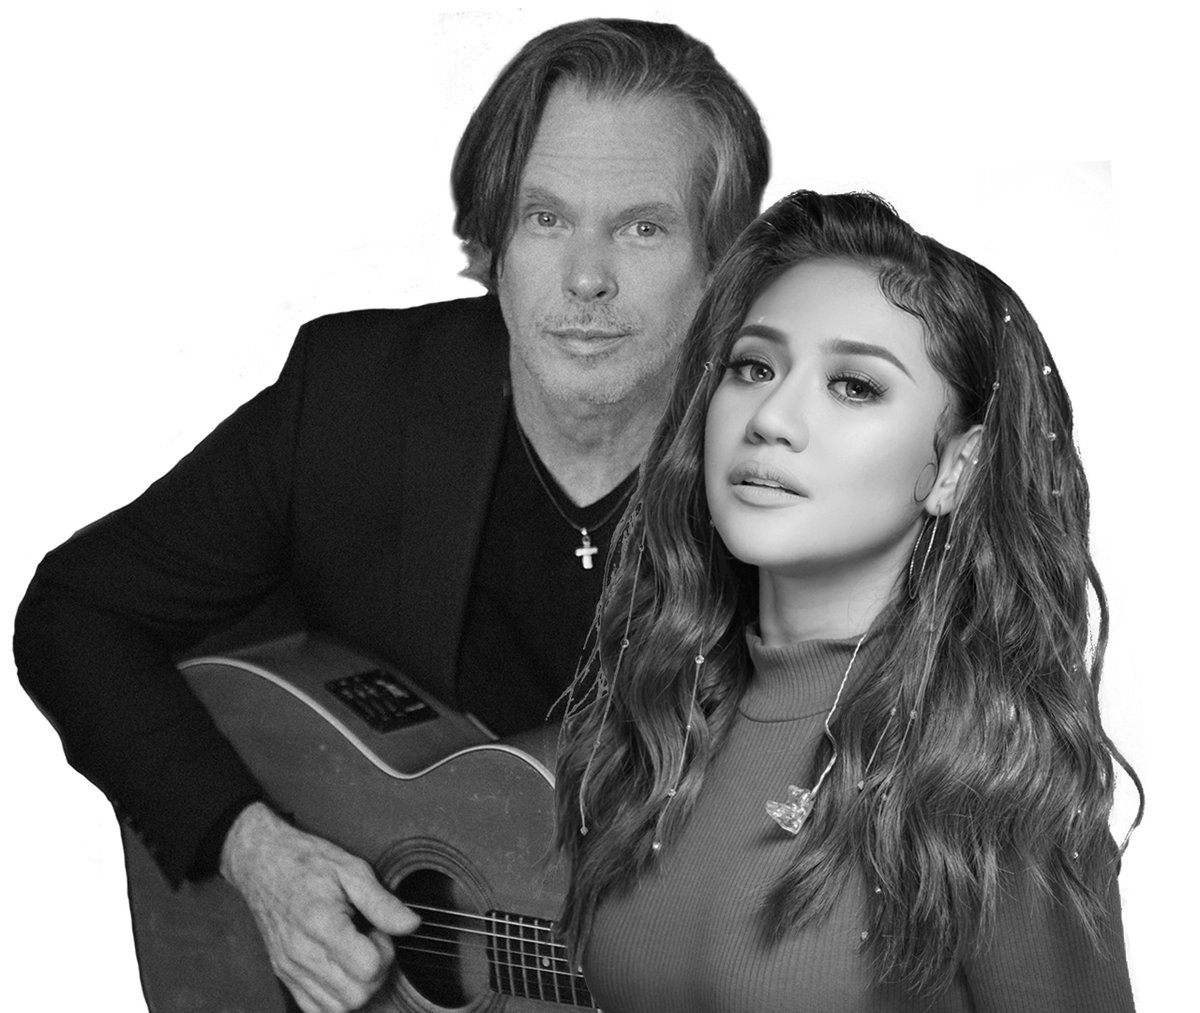 """Rick Price and Morissette put a new spin on the classic ballad """"Heaven Knows"""" - https://www.manilarepublic.com/rick-price-and-morissette-put-a-new-spin-on-the-classic-ballad-heaven-knows/13337/… #Entertainment pic.twitter.com/18etz89Ll3"""